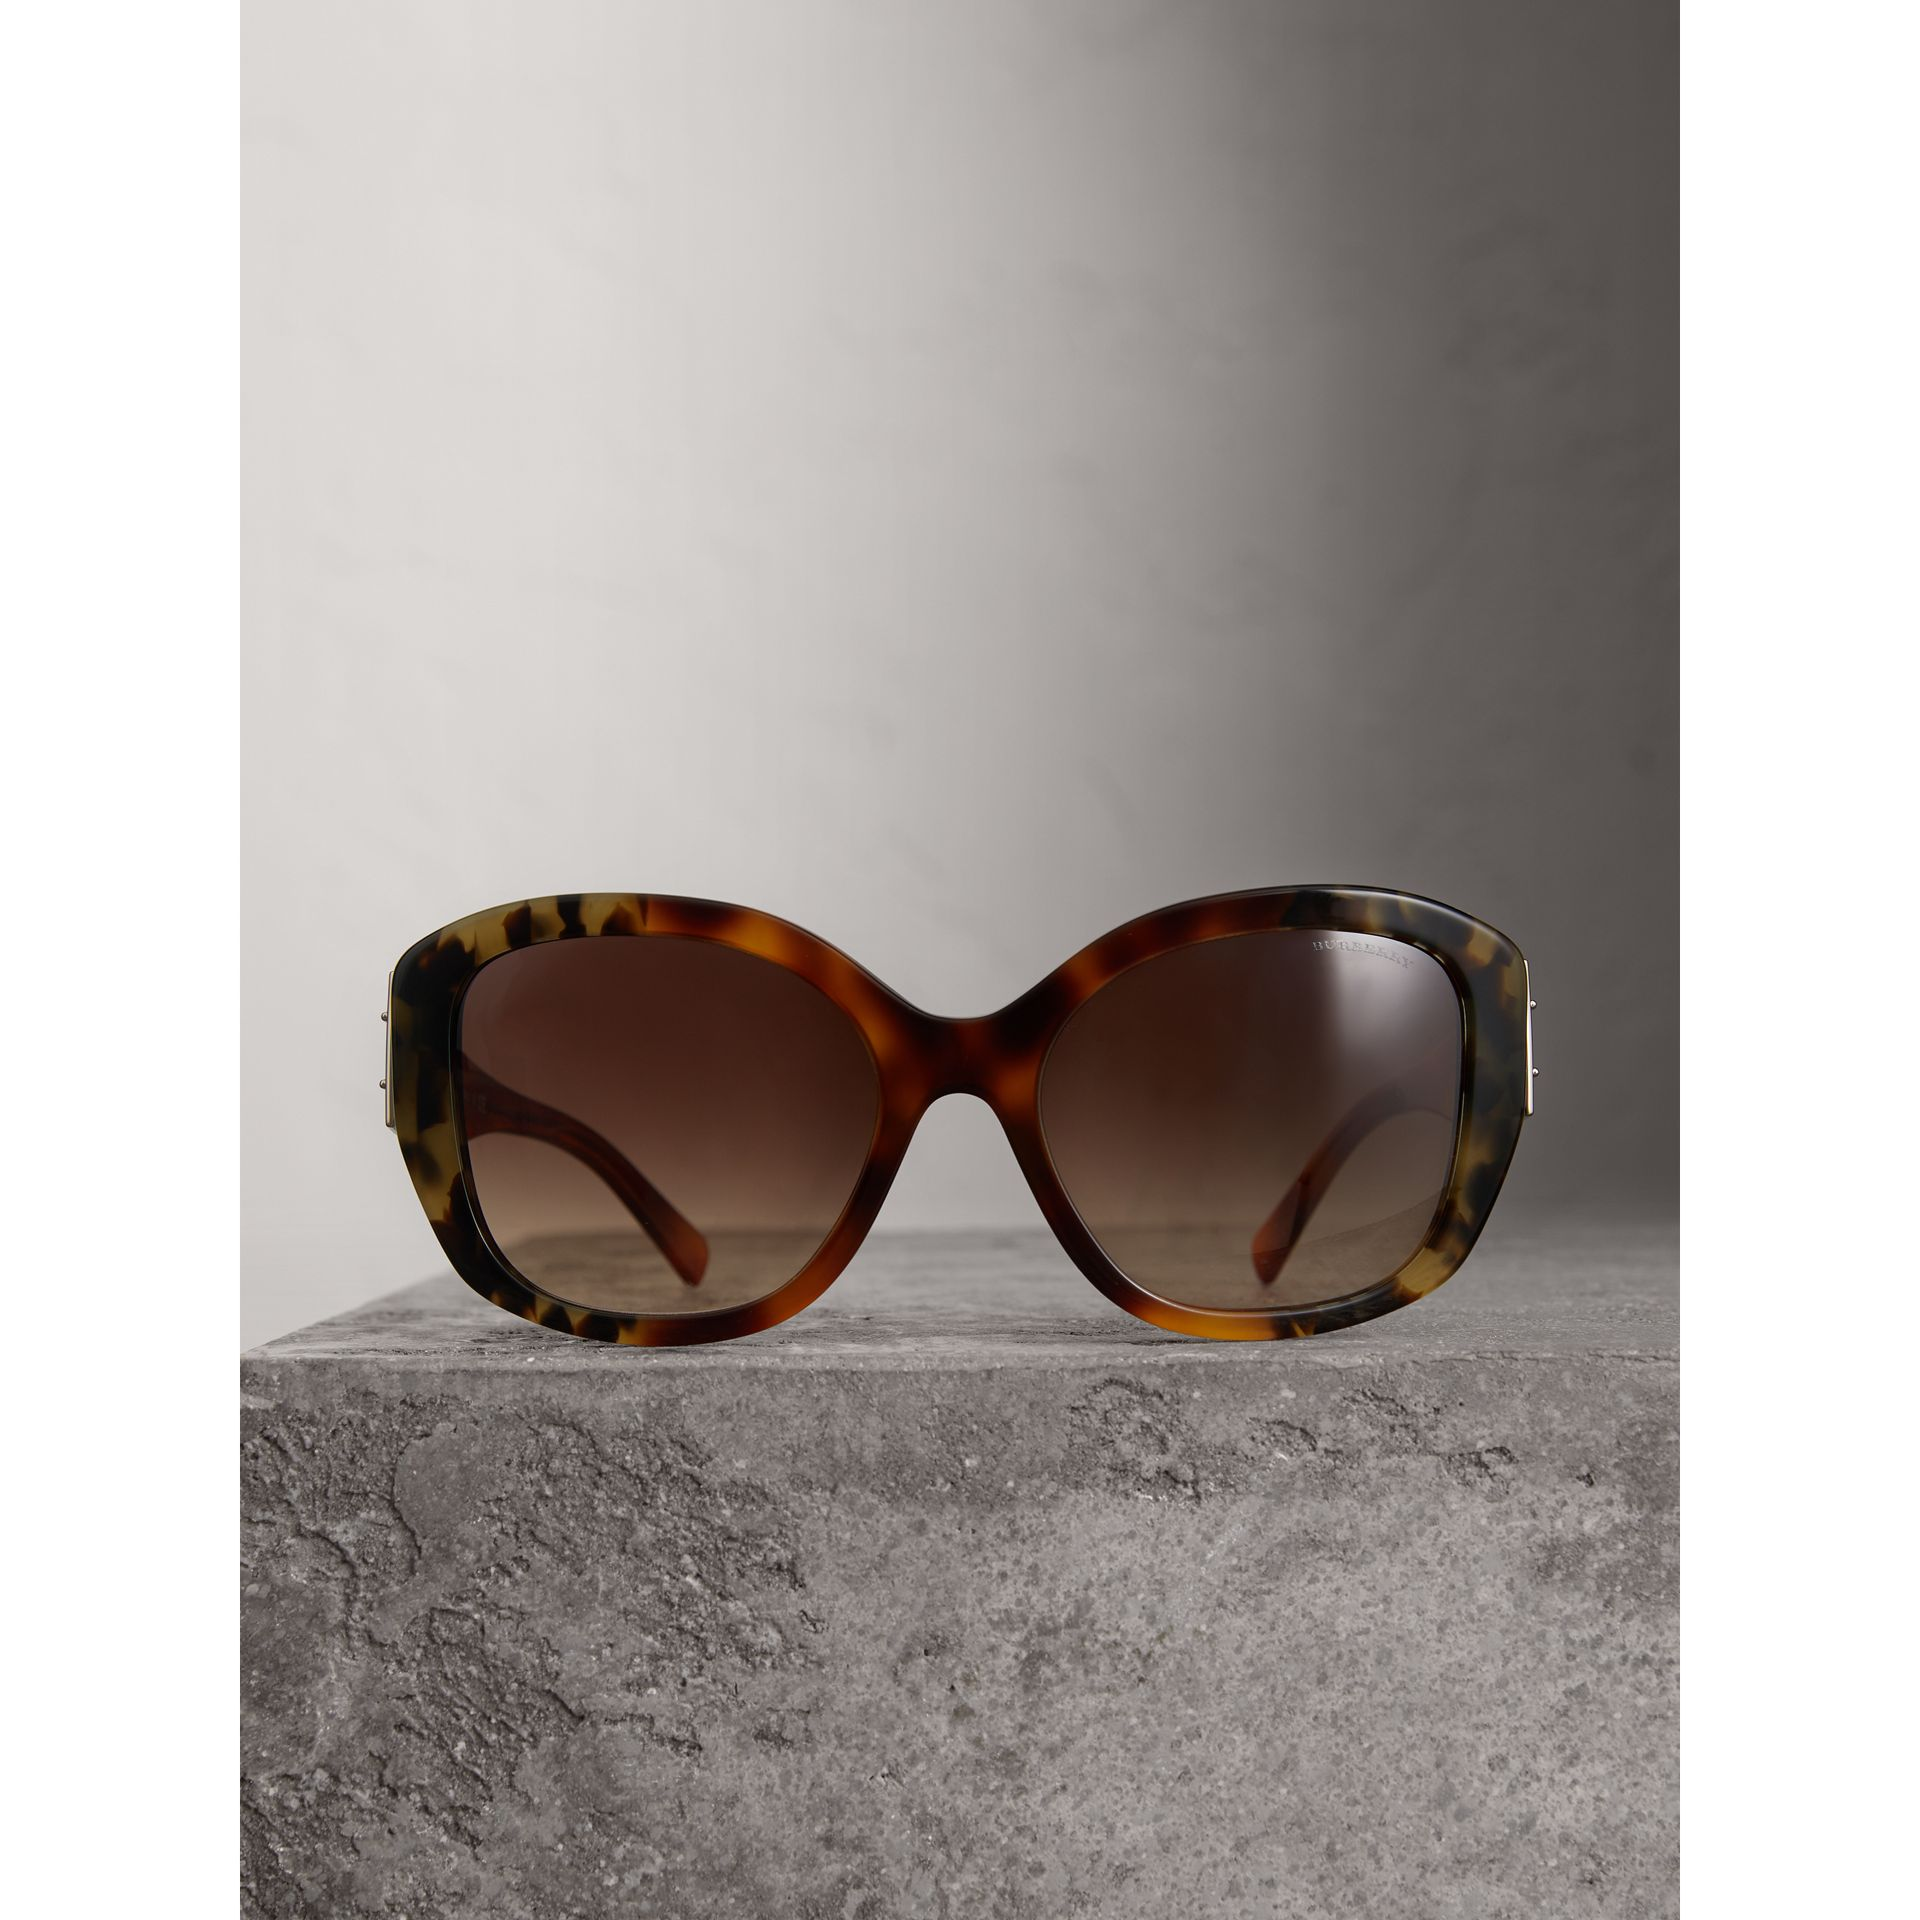 Buckle Detail Oversize Square Frame Sunglasses in Dark Ochre - Women | Burberry Canada - gallery image 3